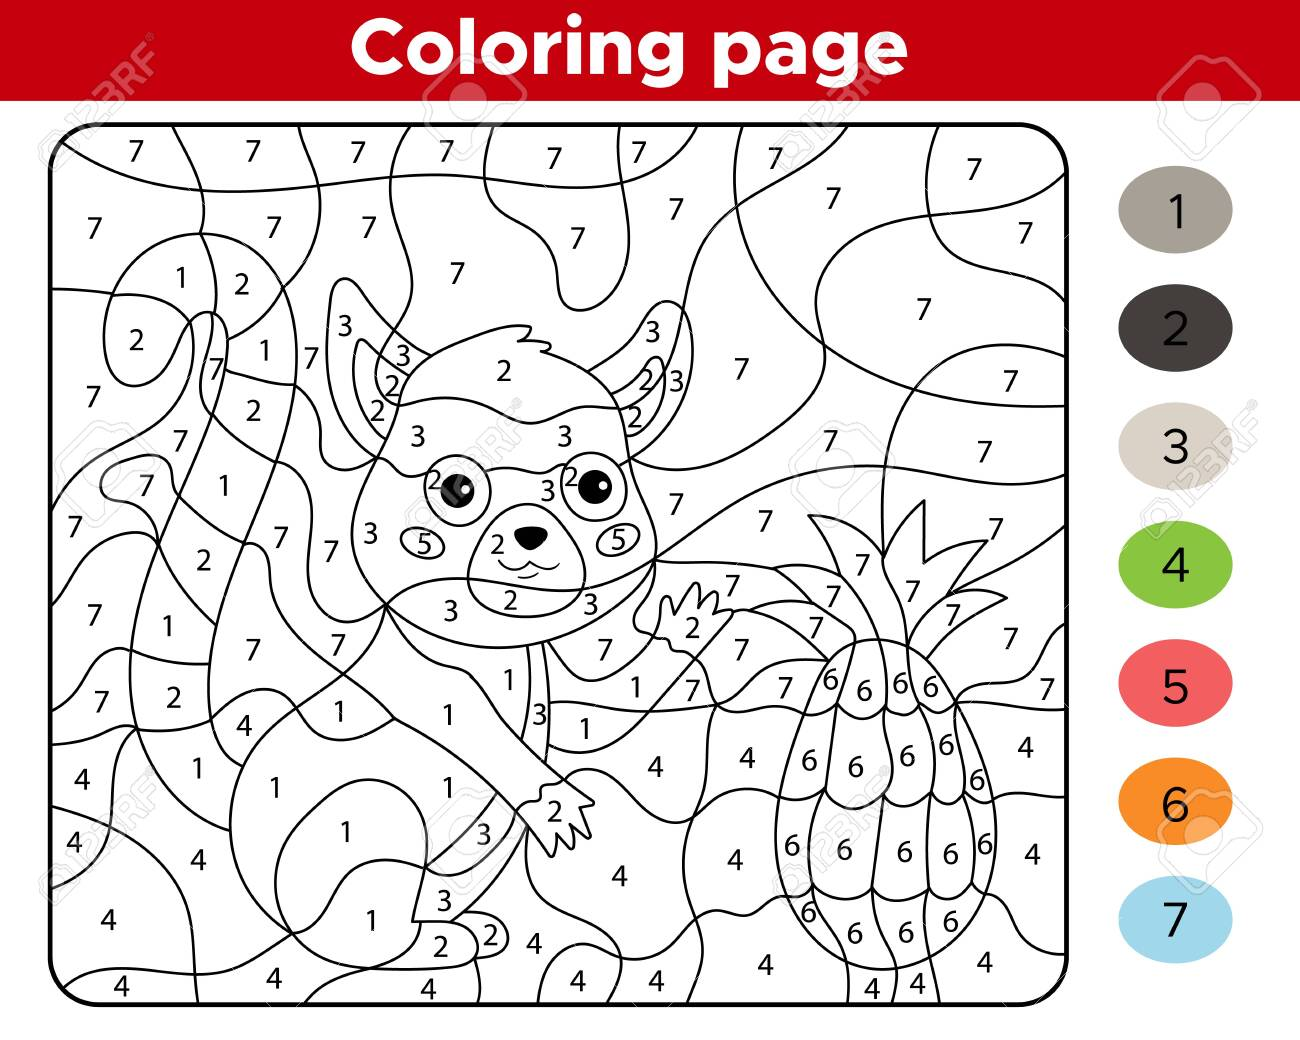 Educational Game For Preschoolers Number Coloring Page Cute Royalty Free Cliparts Vectors And Stock Illustration Image 141921543